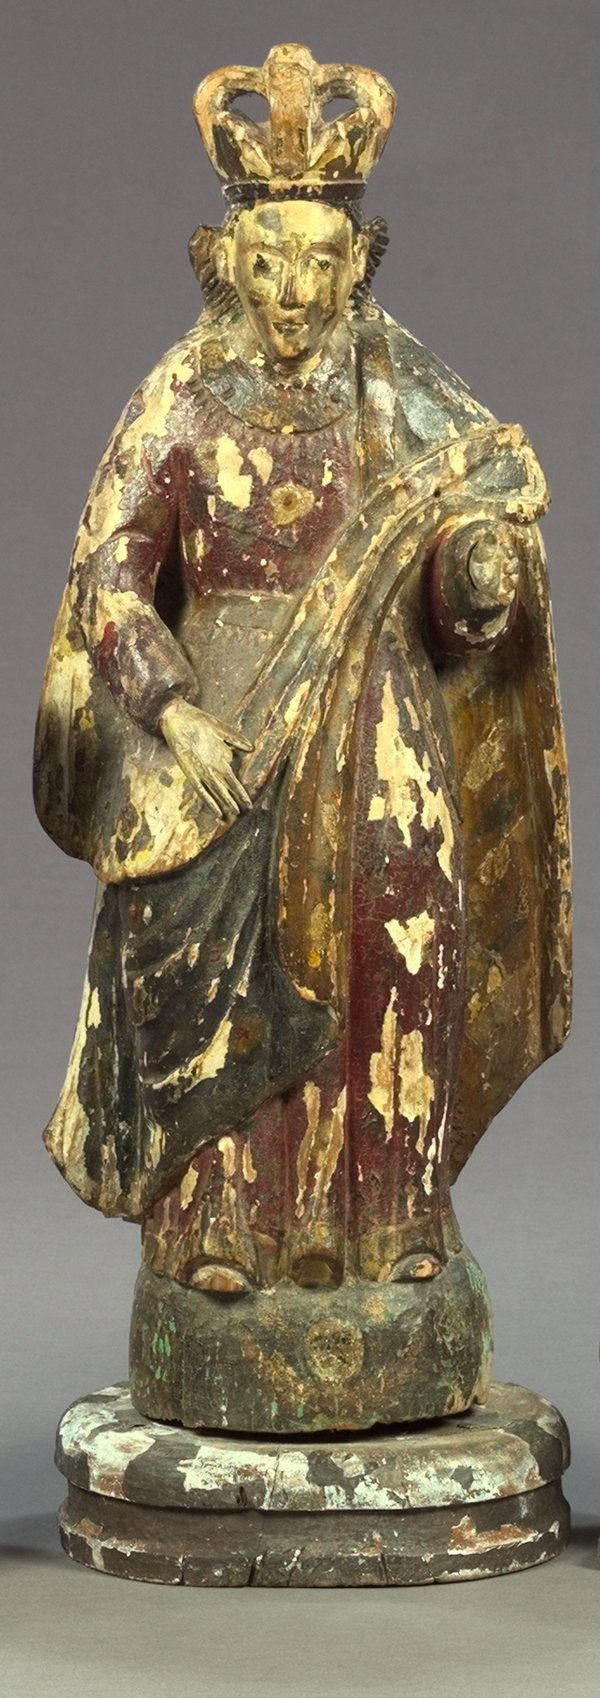 814: Spanish Colonial Carved Wood Figure